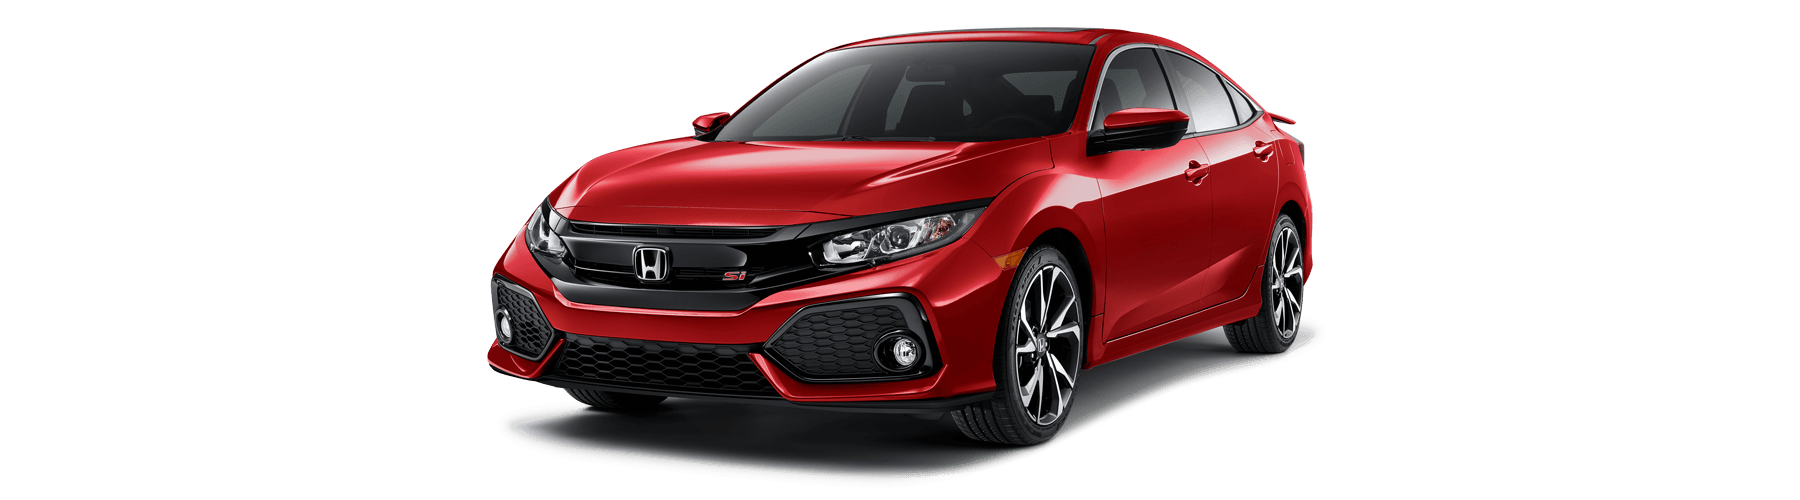 2019 Honda Civic Si Sedan Front Angle